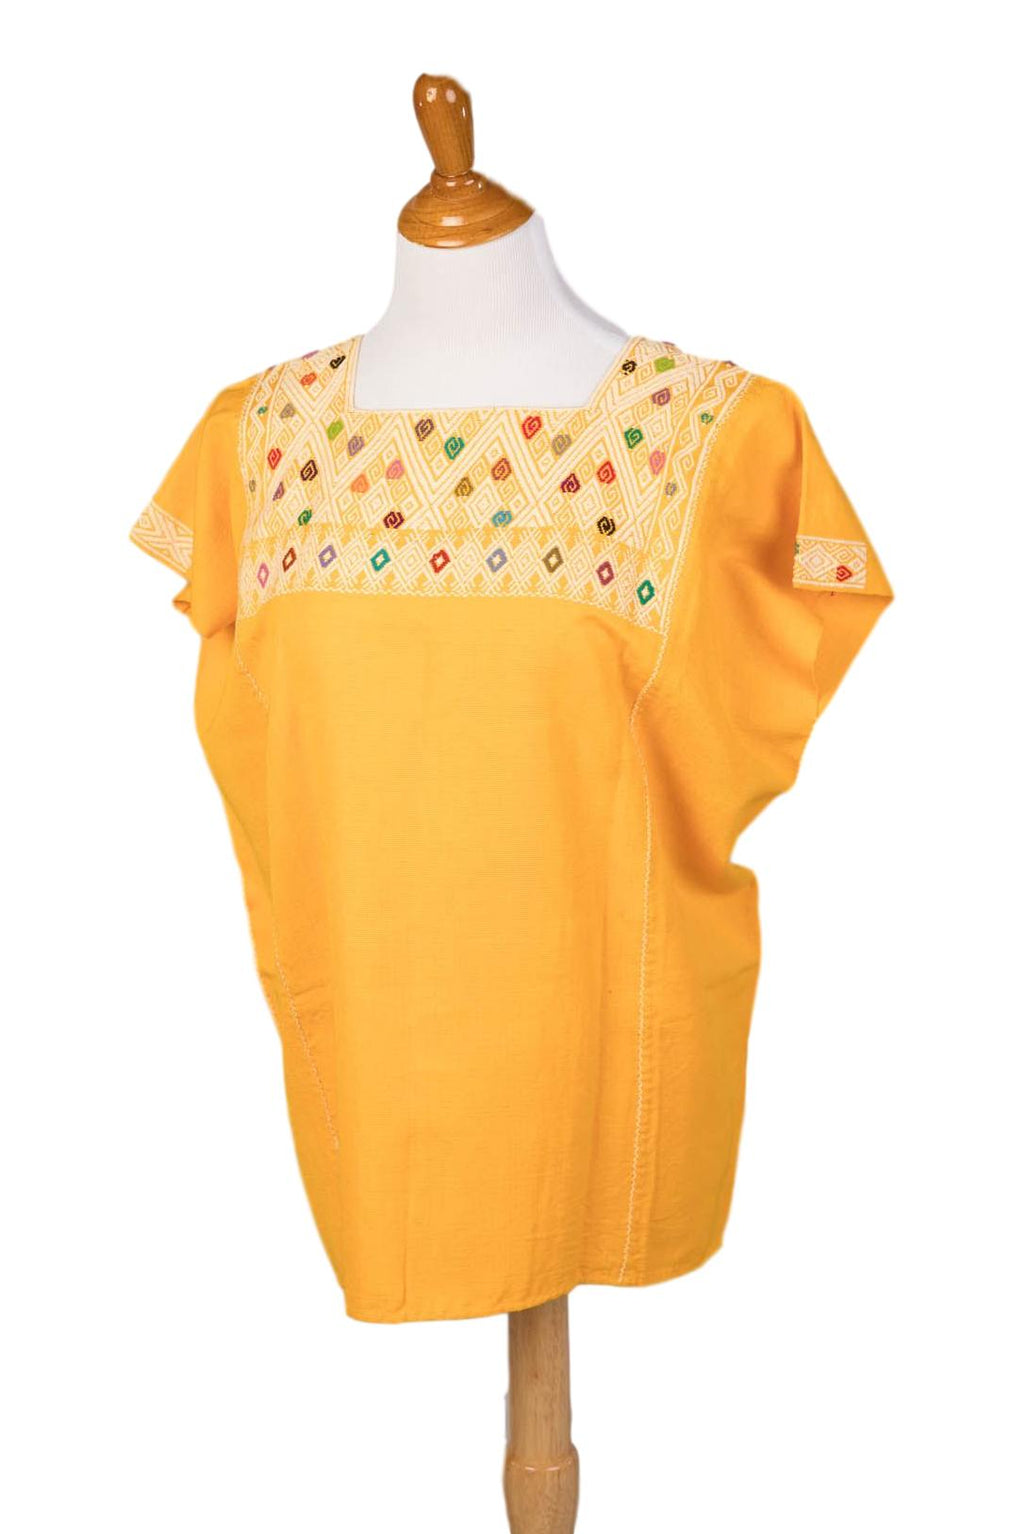 San Andres Mexican Blouse - Yellow